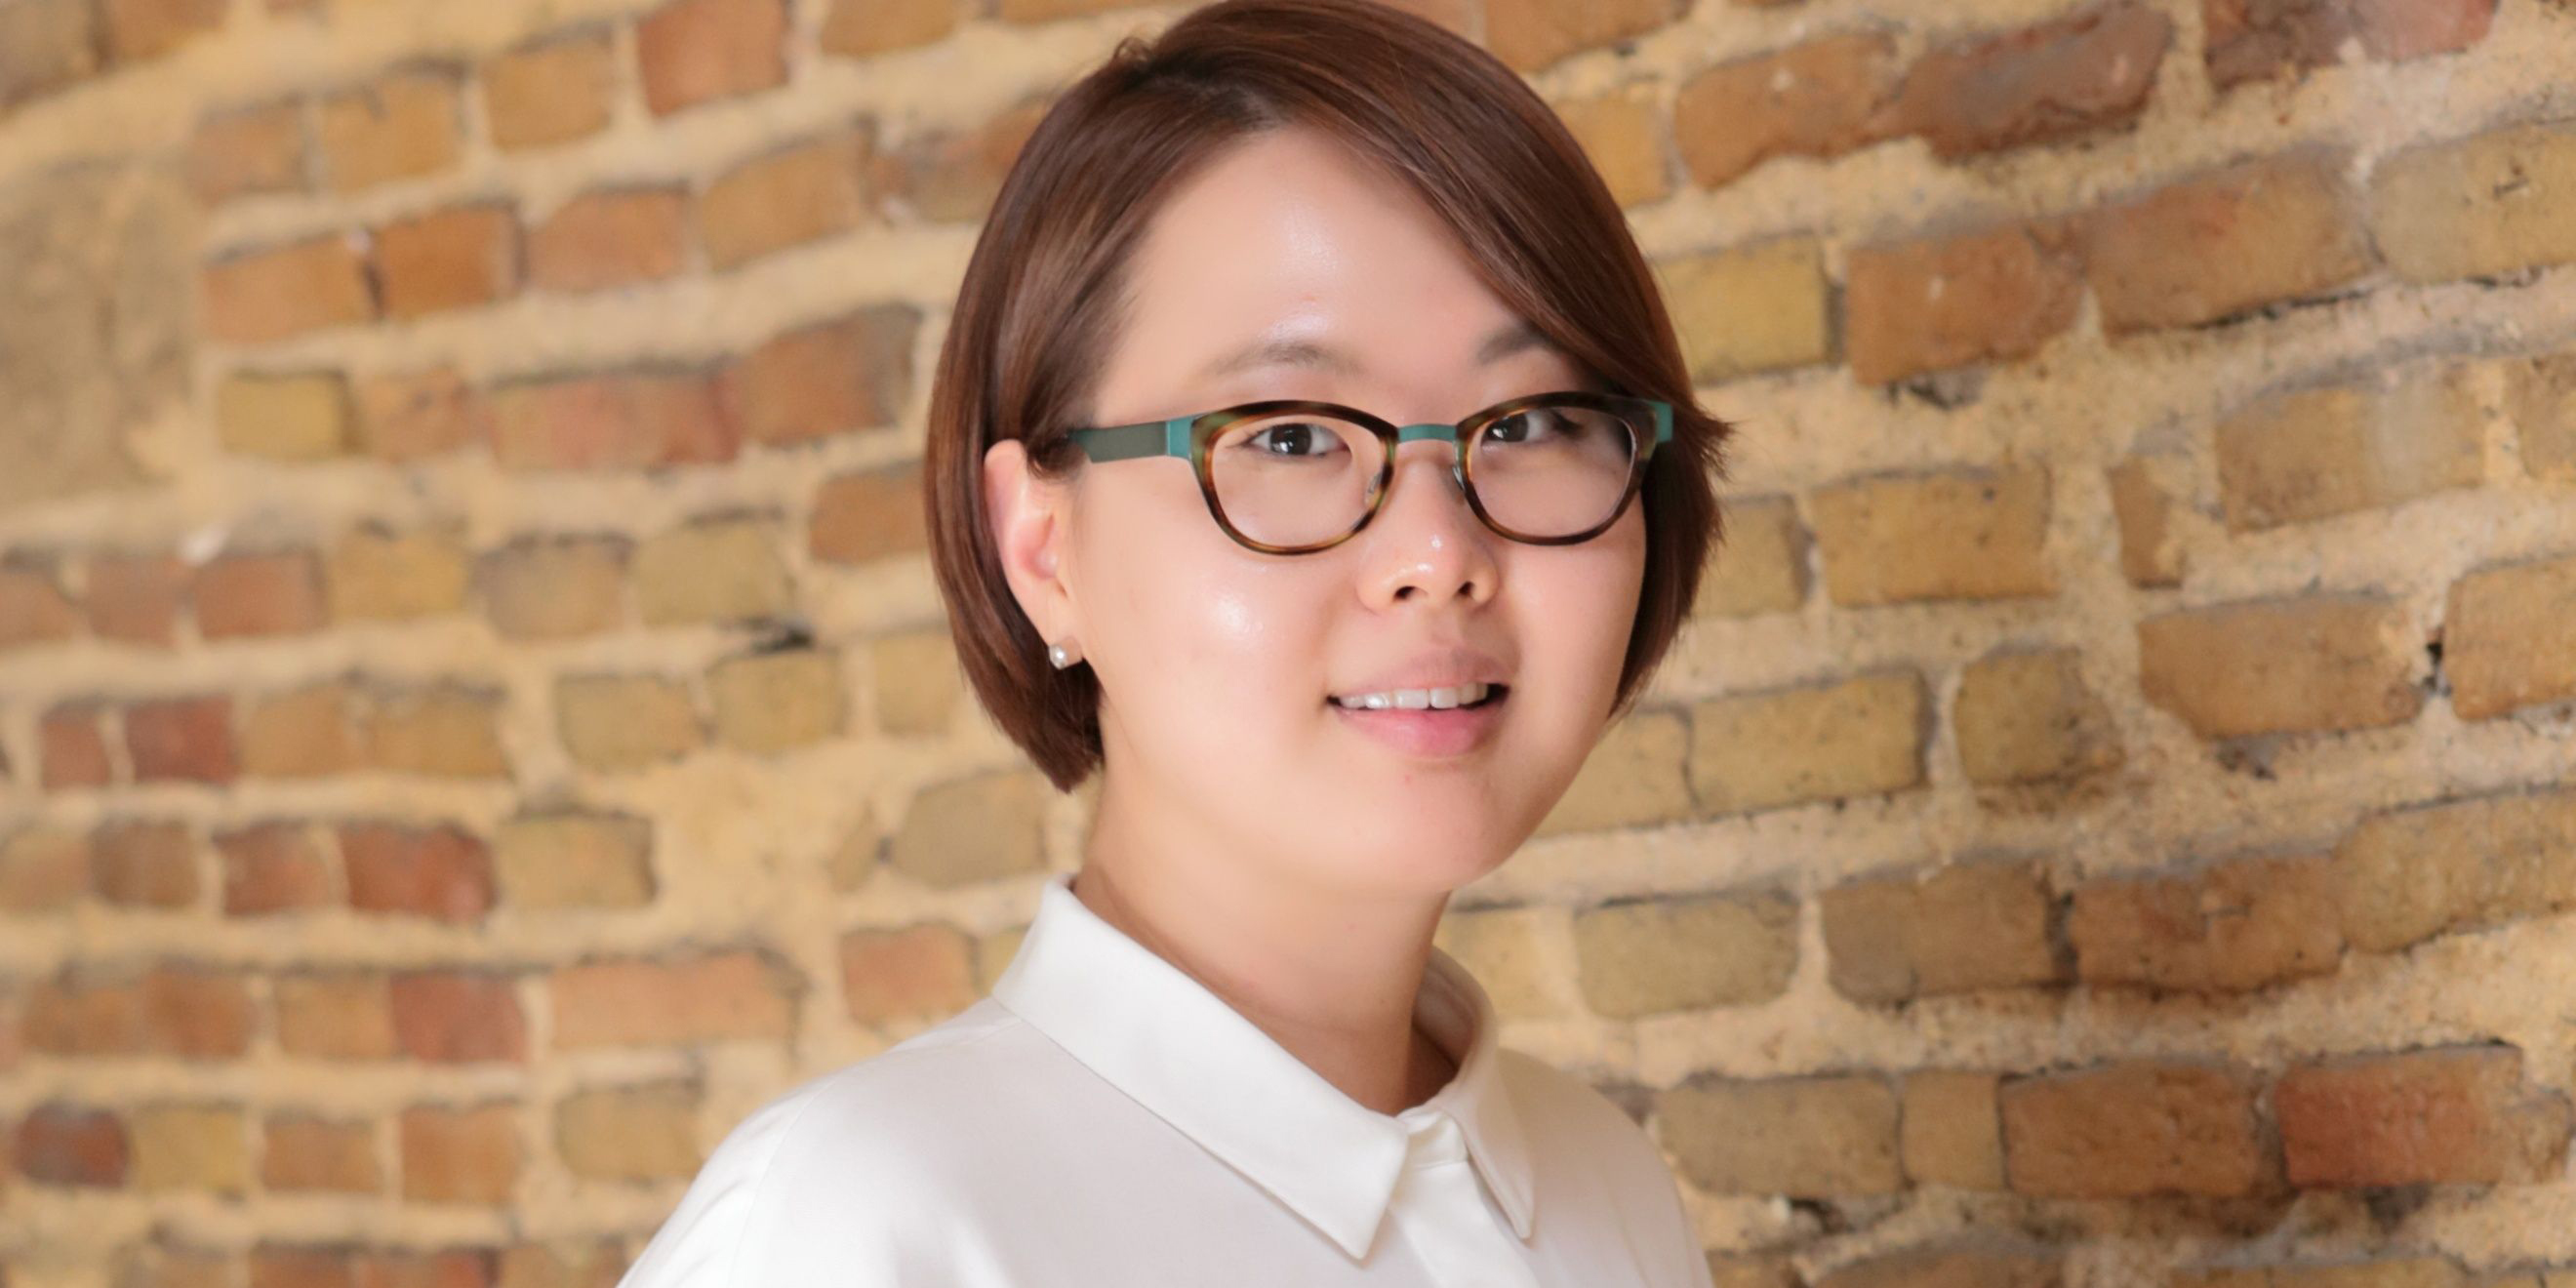 Sooyoung Leam, South Korea, participant in the GCLP 2017 edition